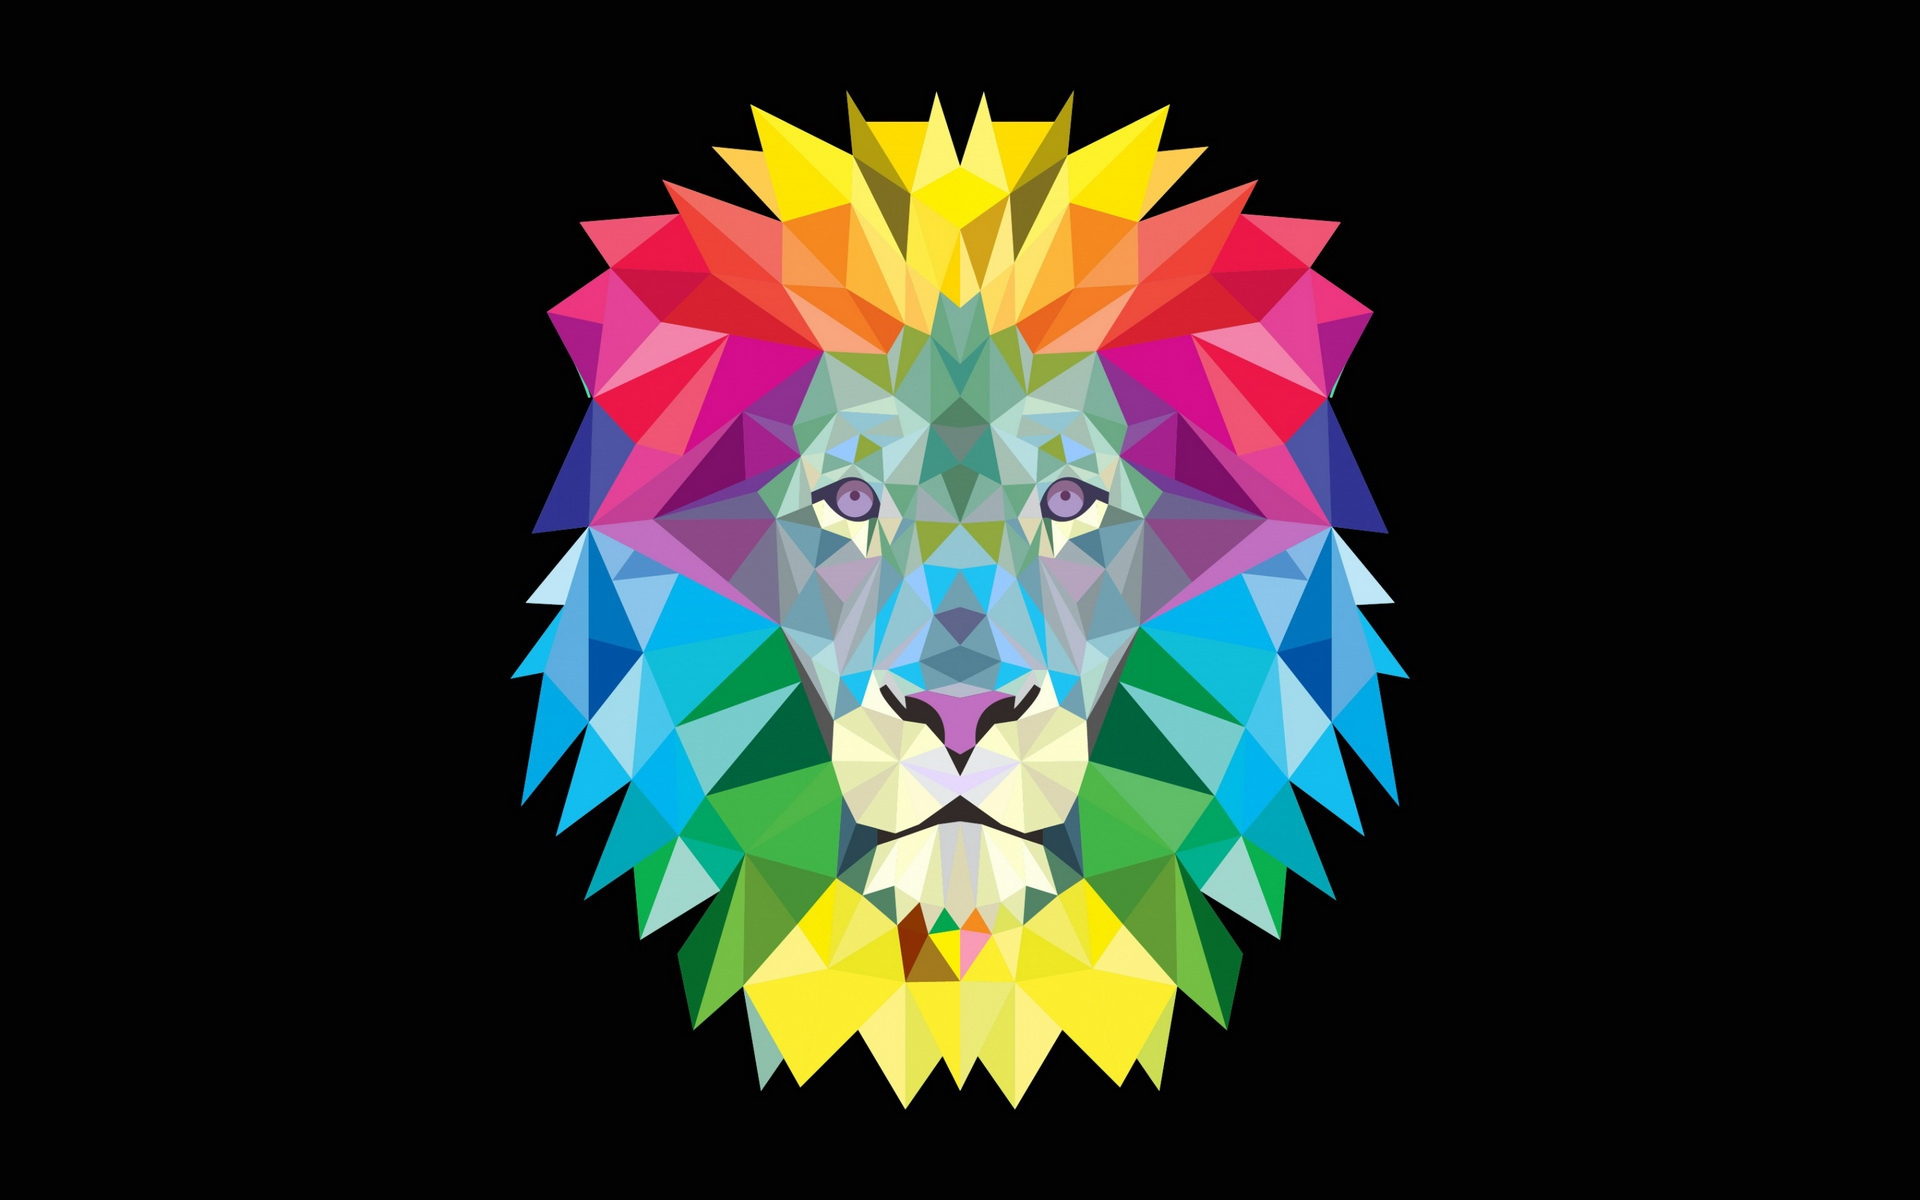 Cool Iphone X Wallpapers 2018 Colorful Geometric Lion Wallpapers Colorful Geometric